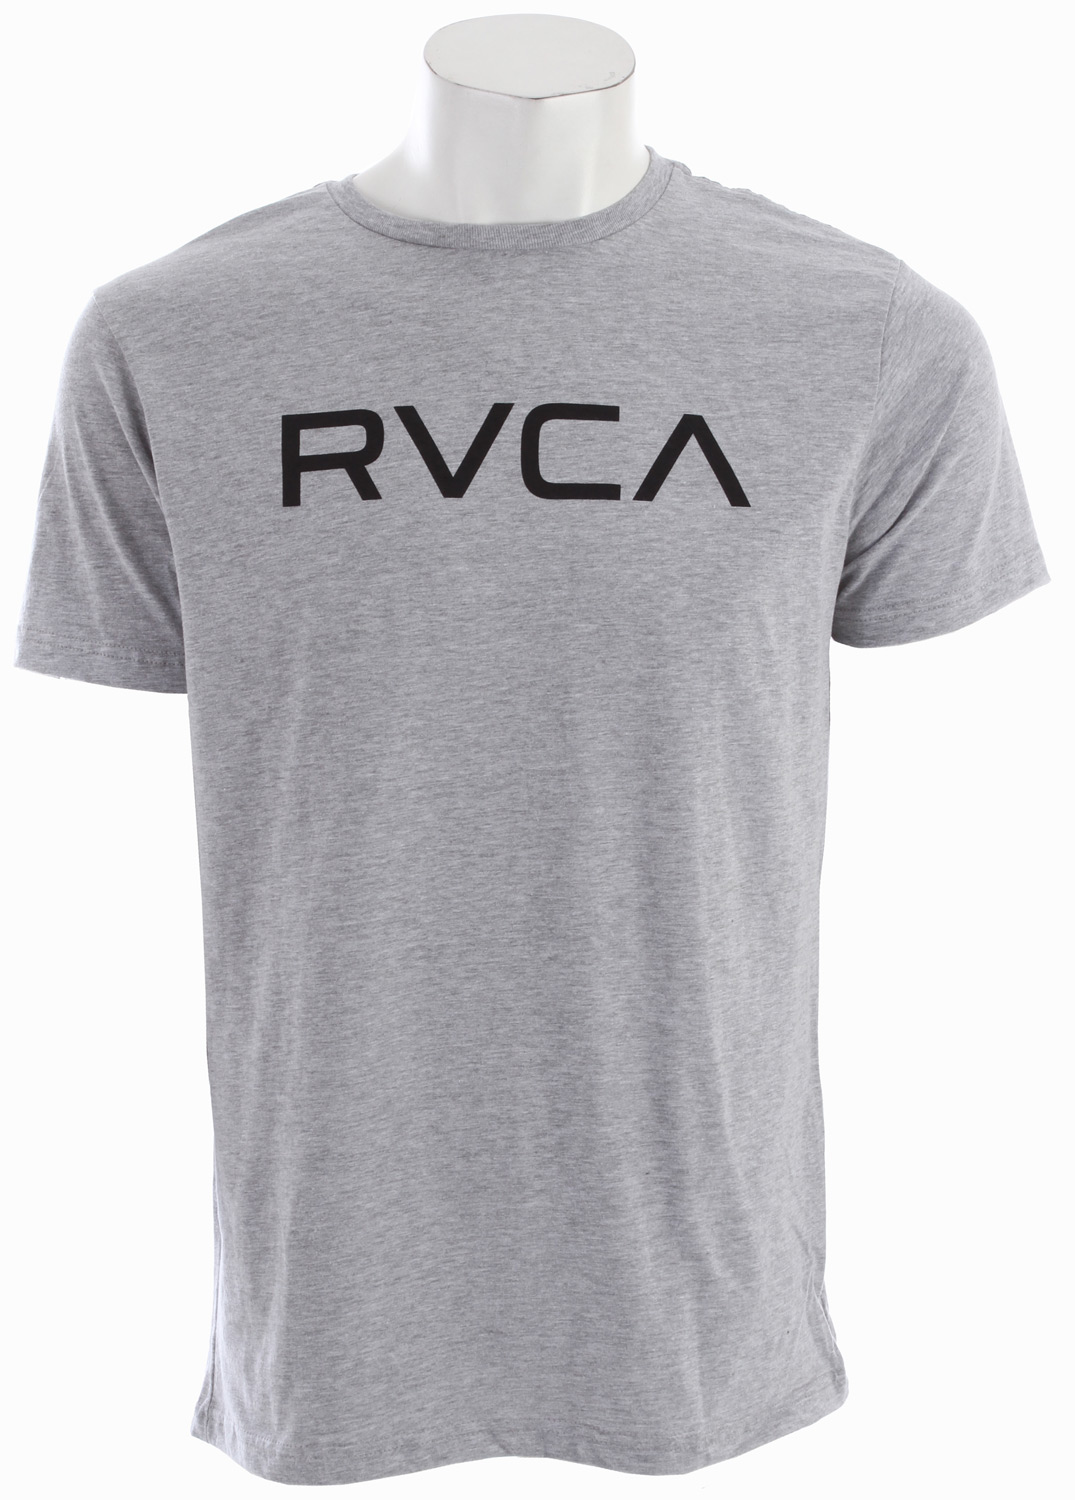 Sports Key Features of The RVCA Big RVCA Raglan Shirt White/Black: Regular Fit Crew Neck Raglan 30/1 100% cotton baseball raglan Front screenprint and screened inside neck - $24.00